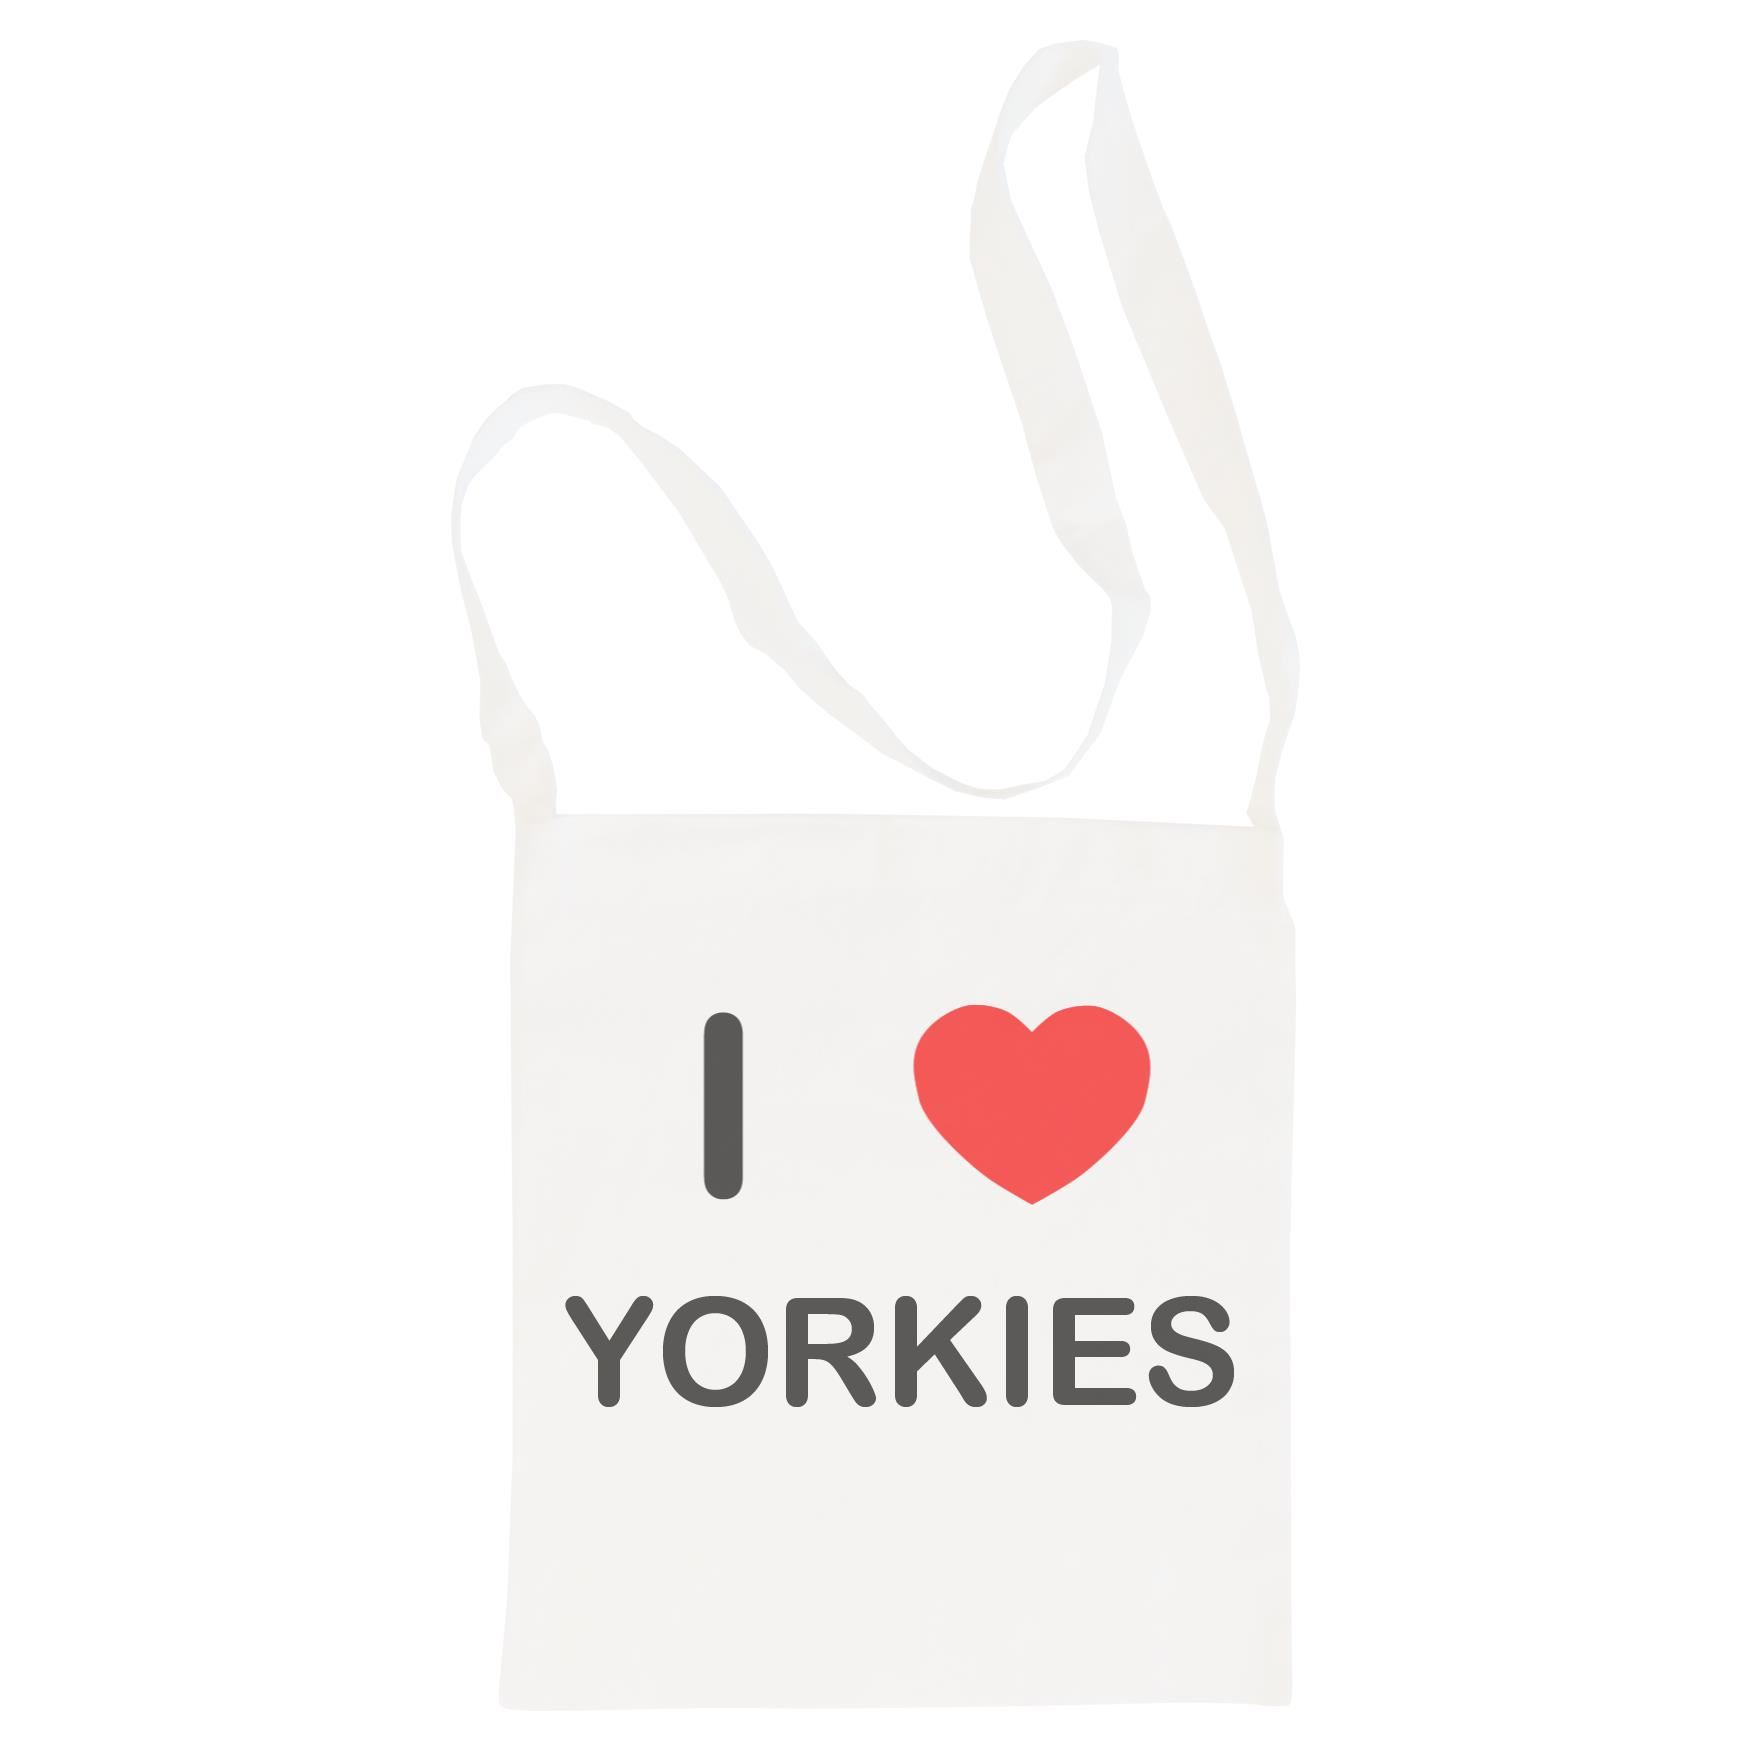 I Love Yorkies - Cotton Bag | Size choice Tote, Shopper or Sling